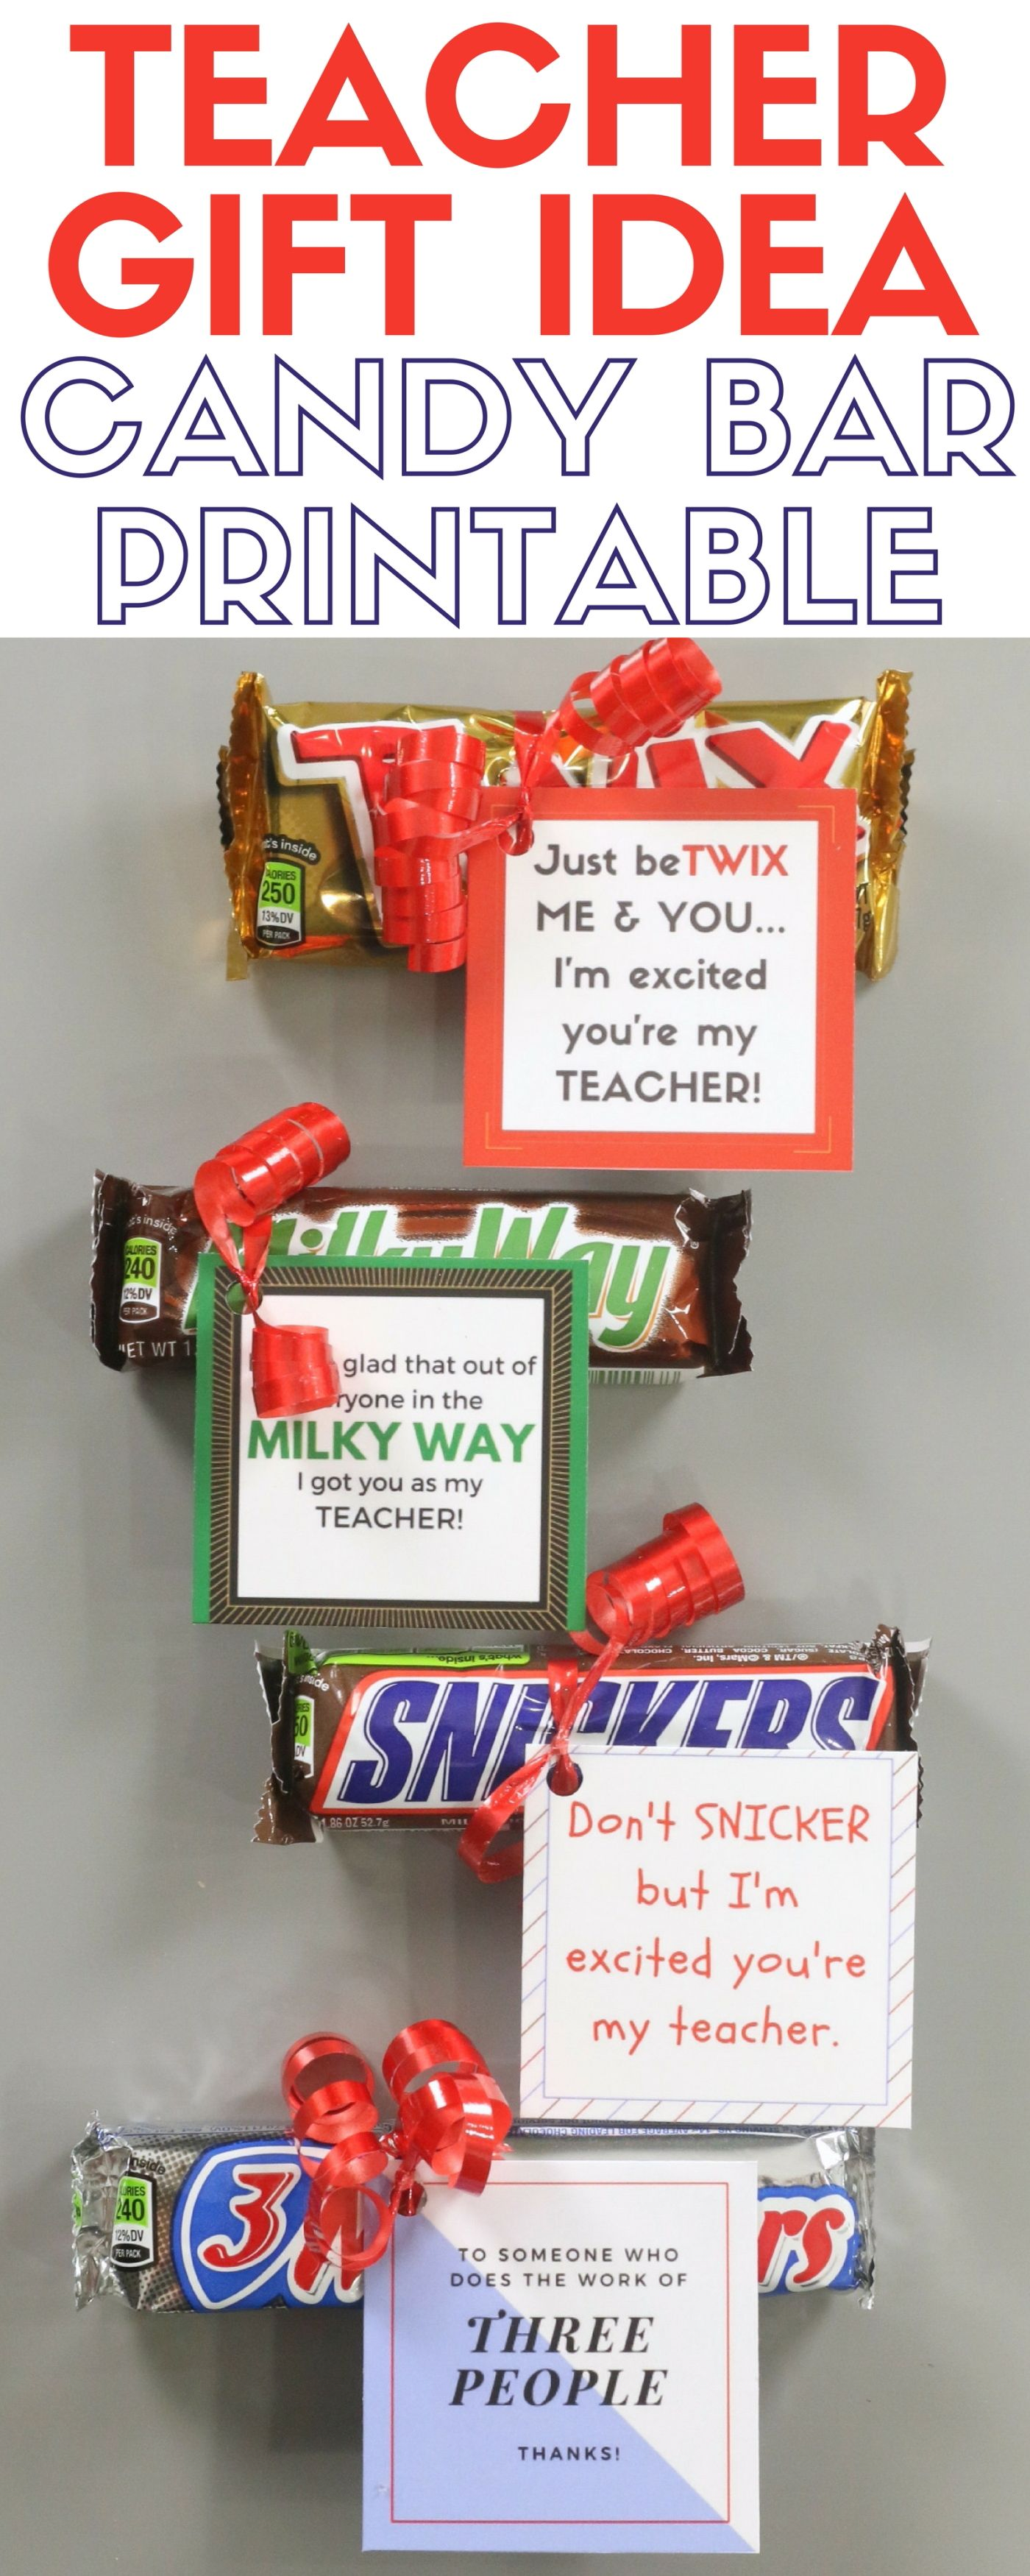 How to make a candy bar printable teacher gift idea for Simple gifts to make